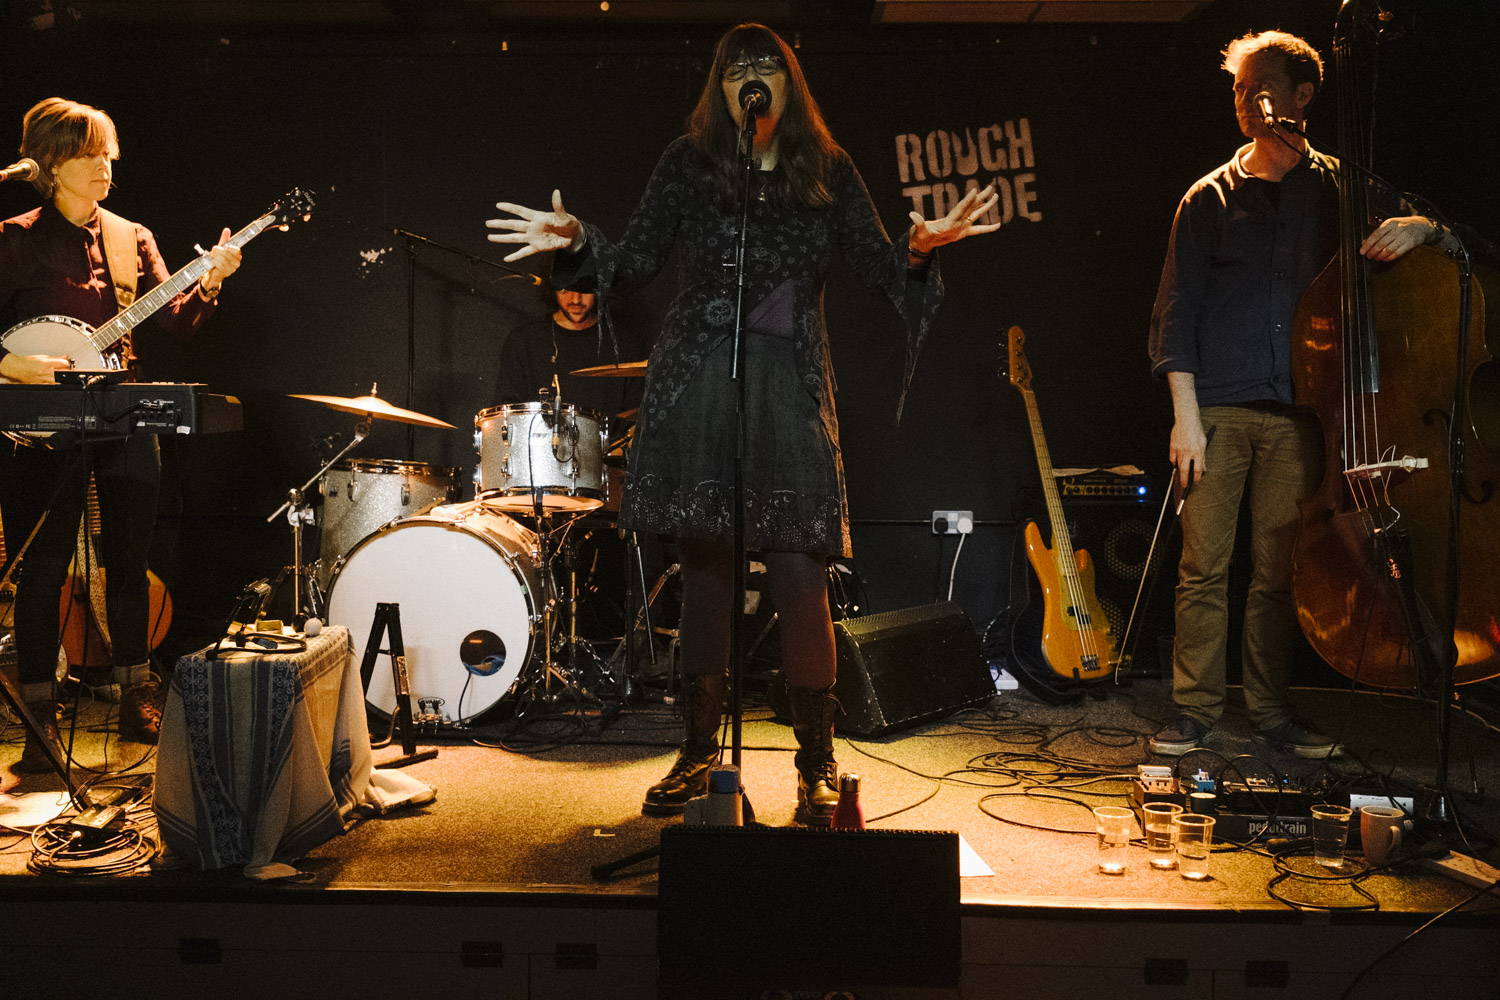 Marry (centre), Emily (stage right), Lukas (stage left) and Rob (rear) in the Rough Trade live room